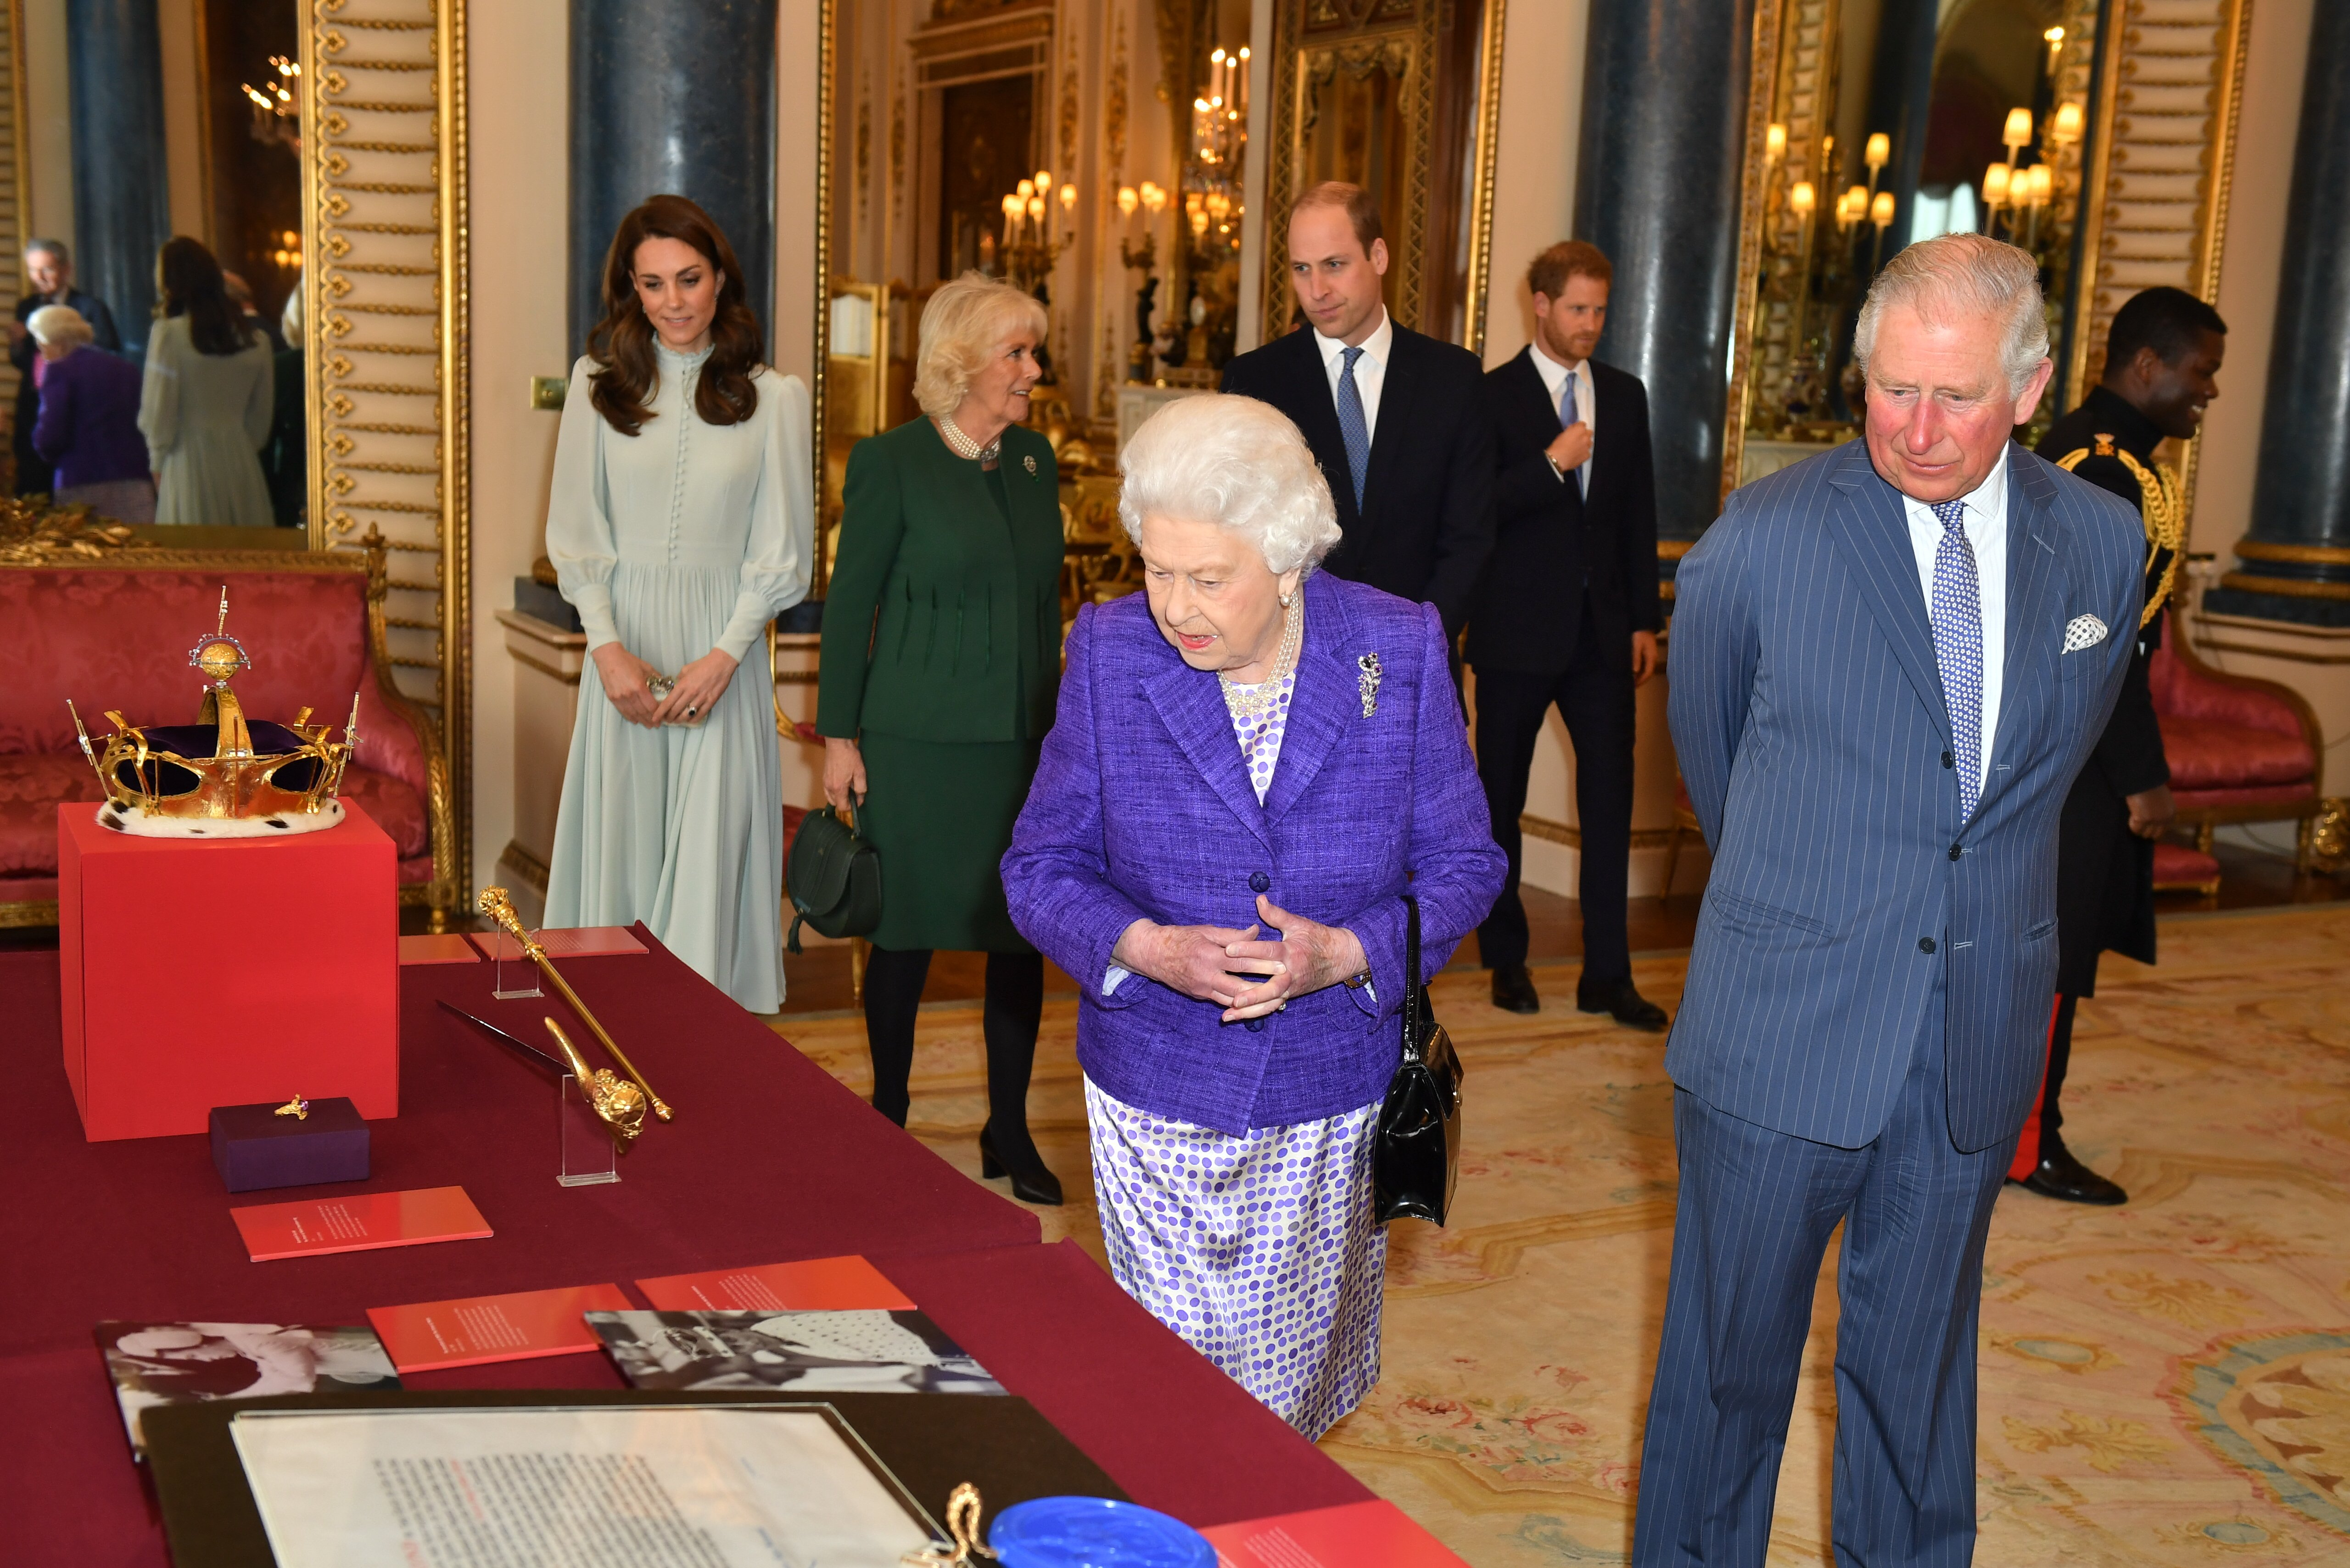 The Royal family together at the 50th anniversary of the Investiture of the Prince of Wales at Buckingham Palace   Photo: Getty Images